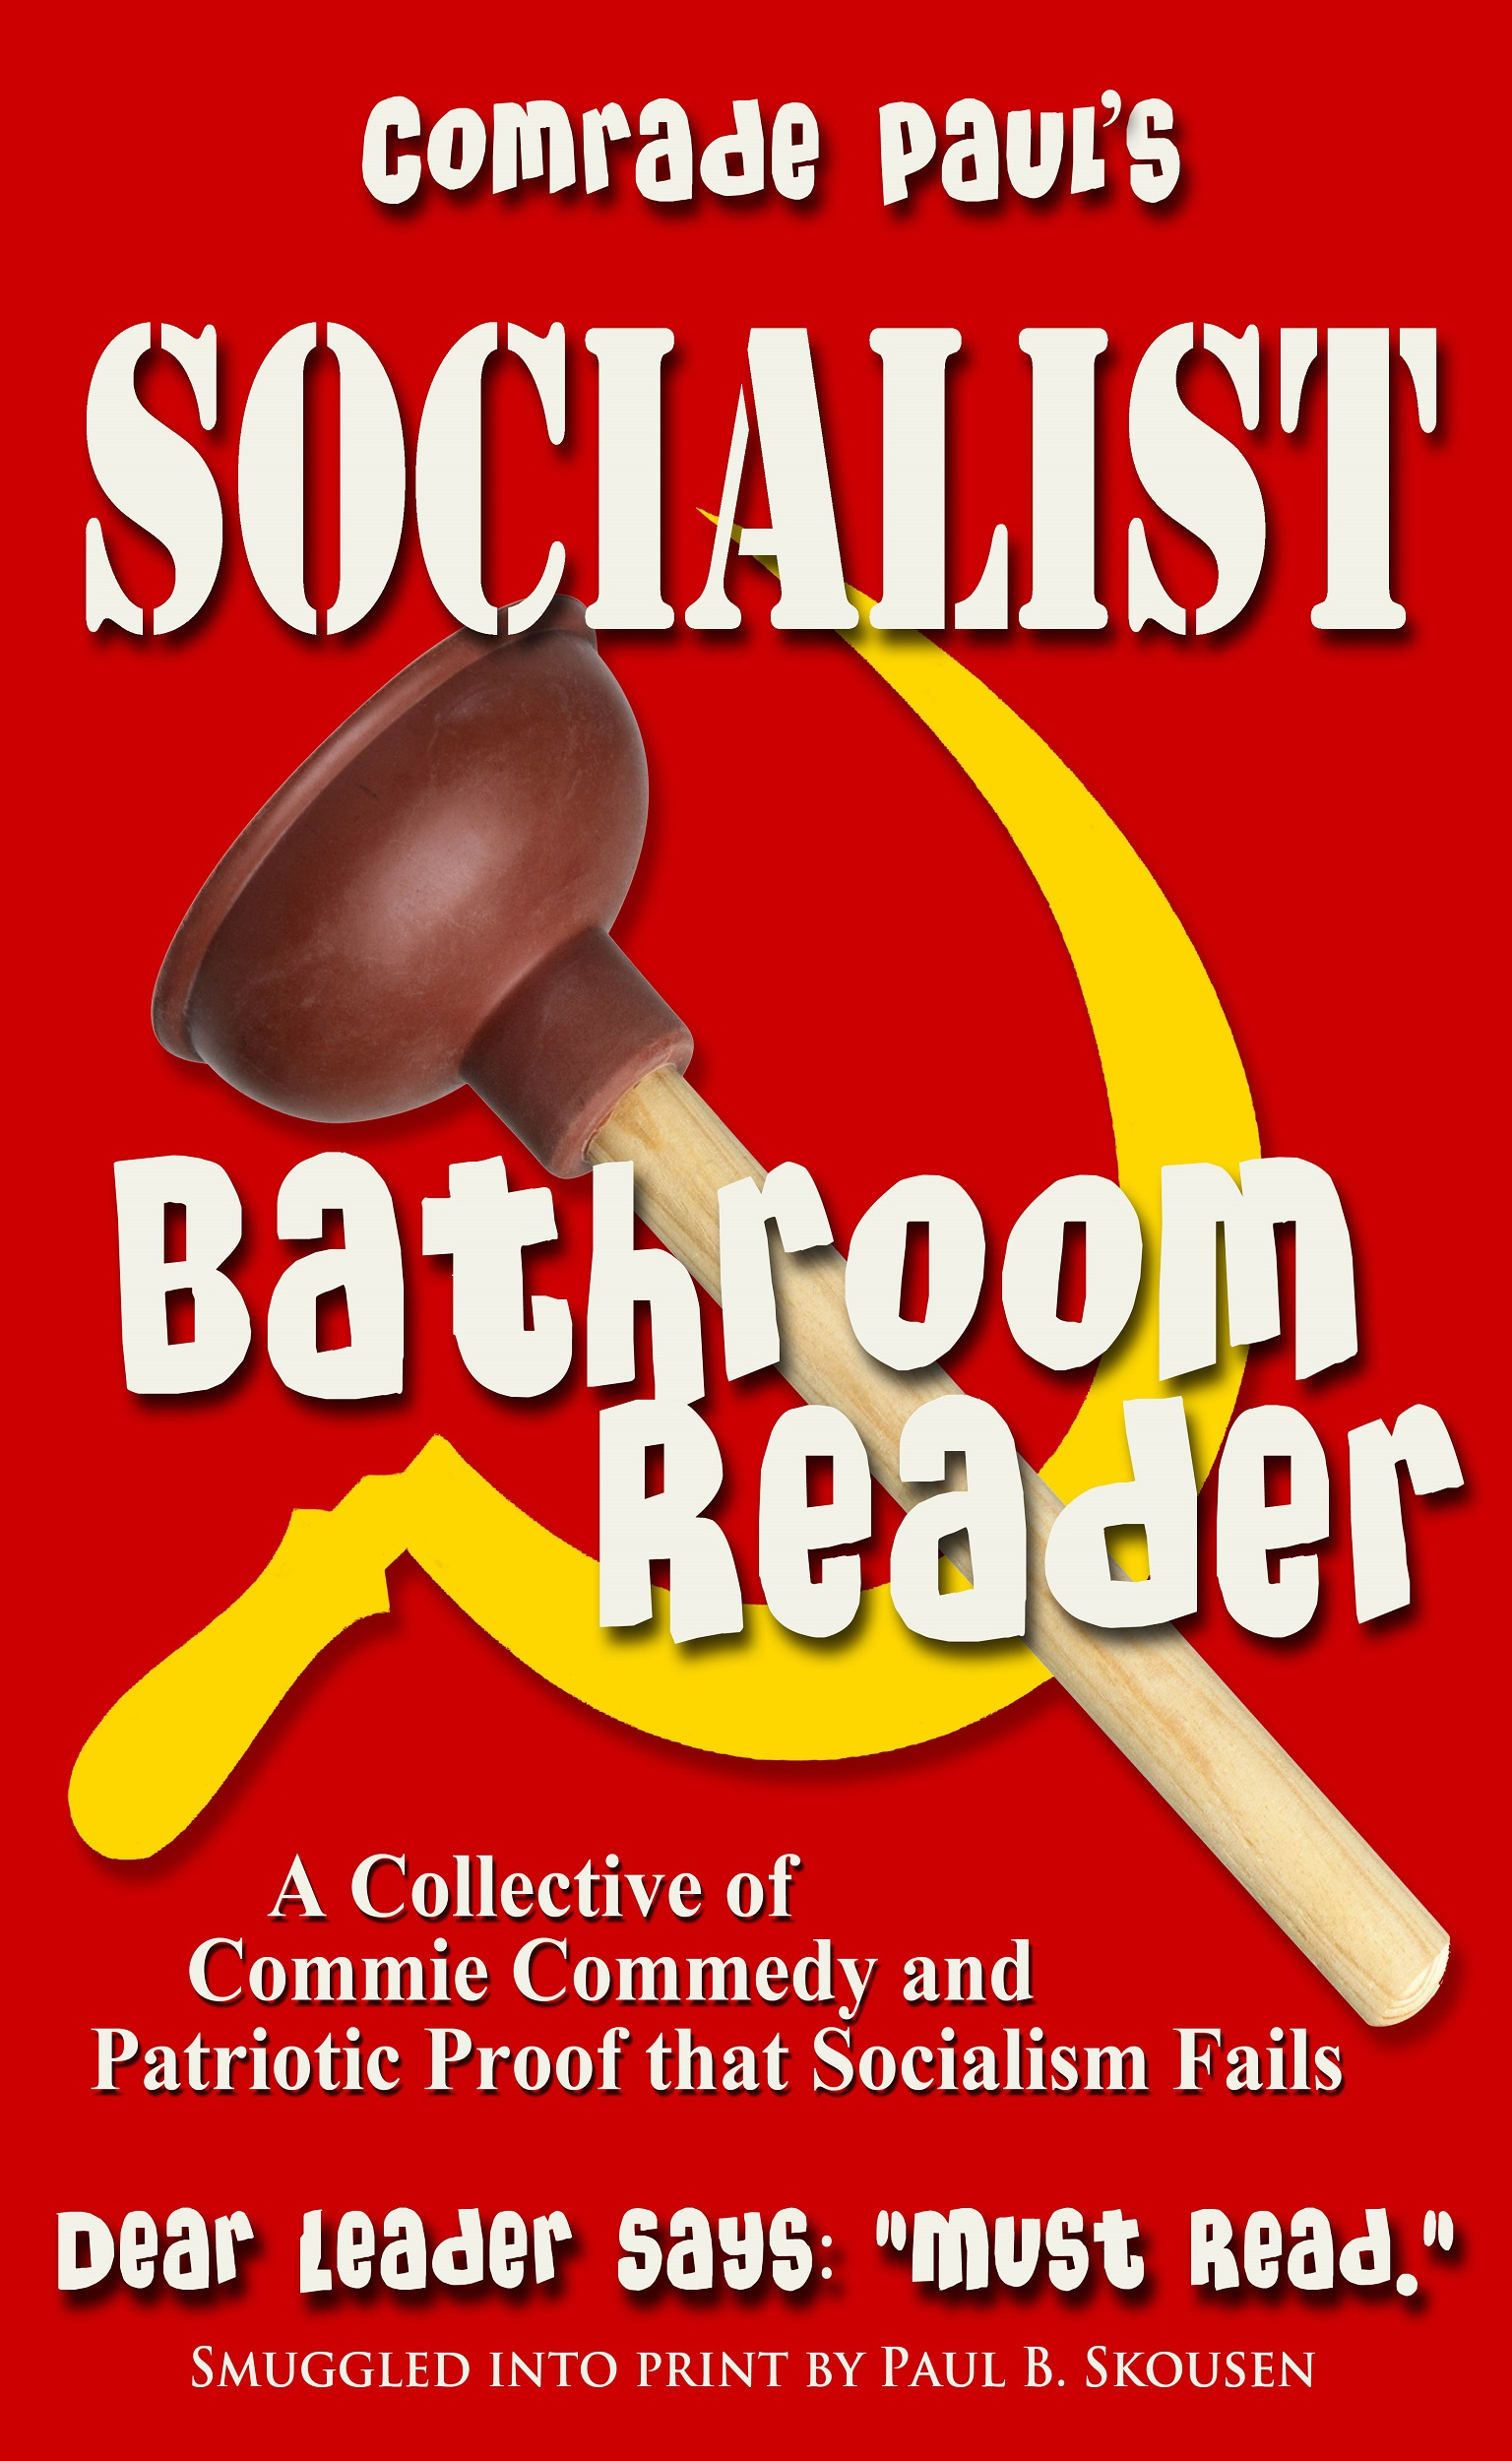 Comrade Paul's Socialist Bathroom Reader Volume 1 cover